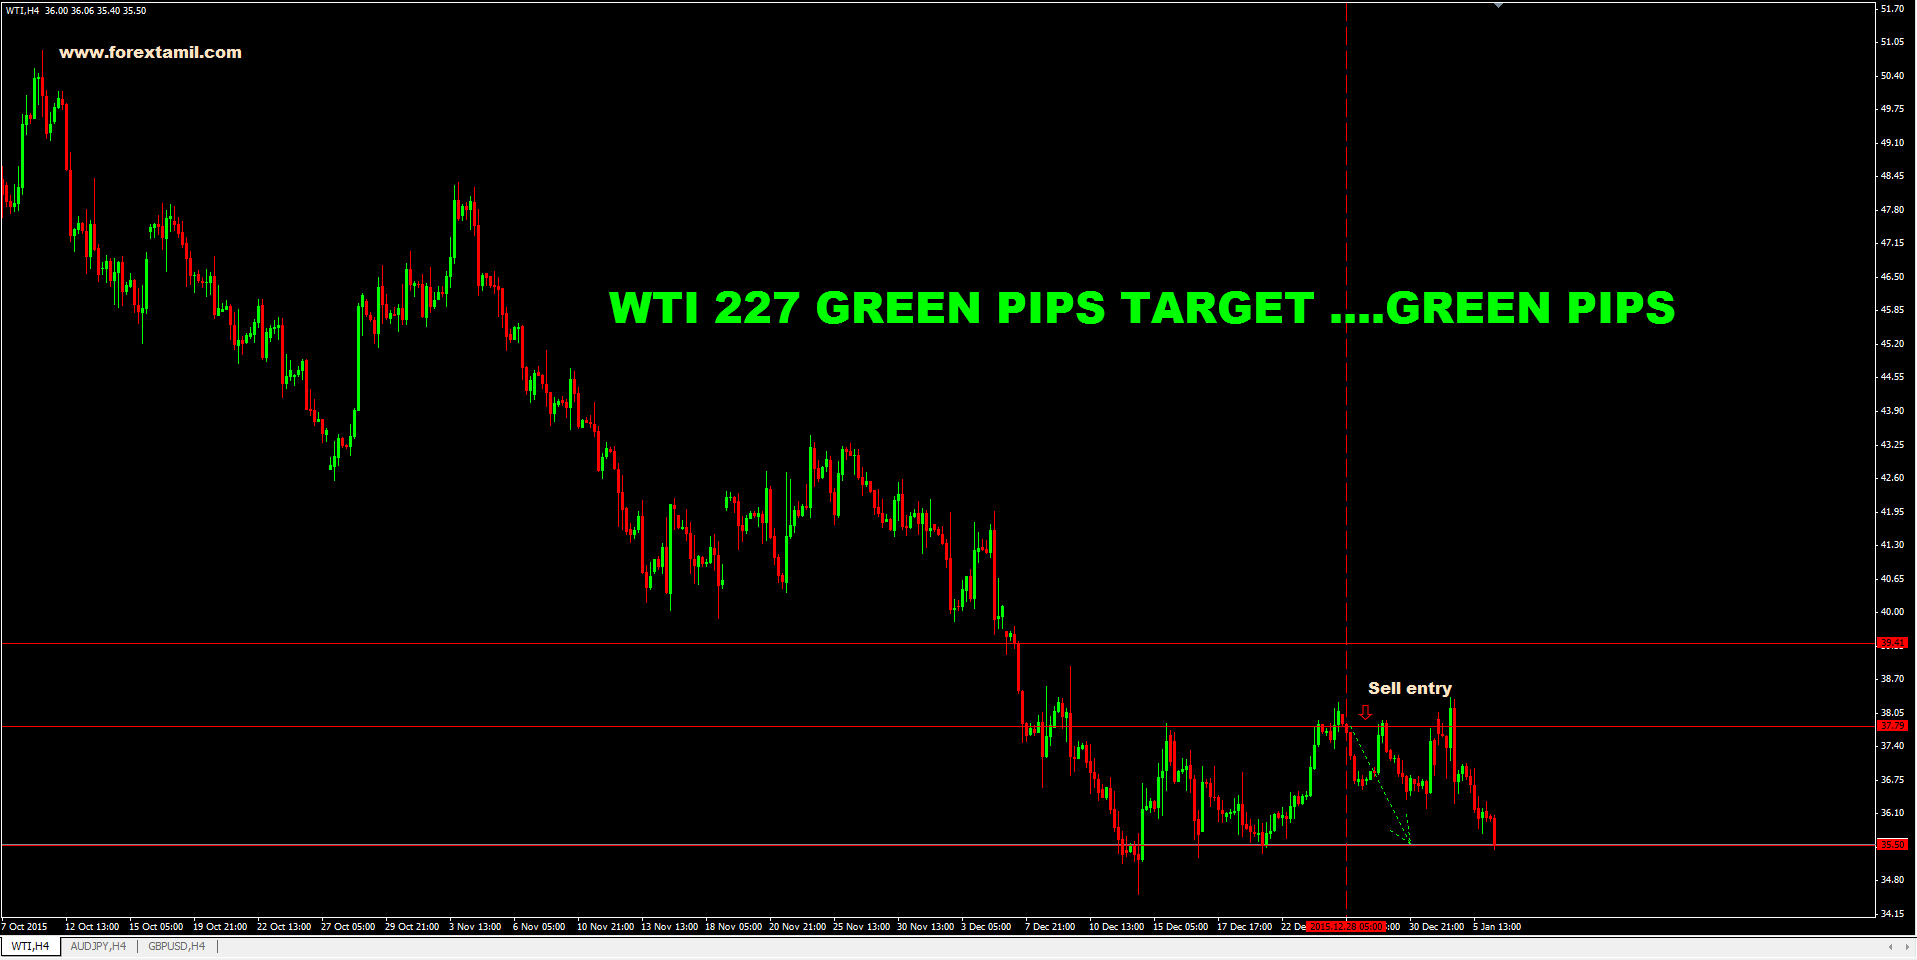 SURE SHOT SIGNAL RESULT: WTI 227 GREEN PIPS….TARGET ACHIEVED